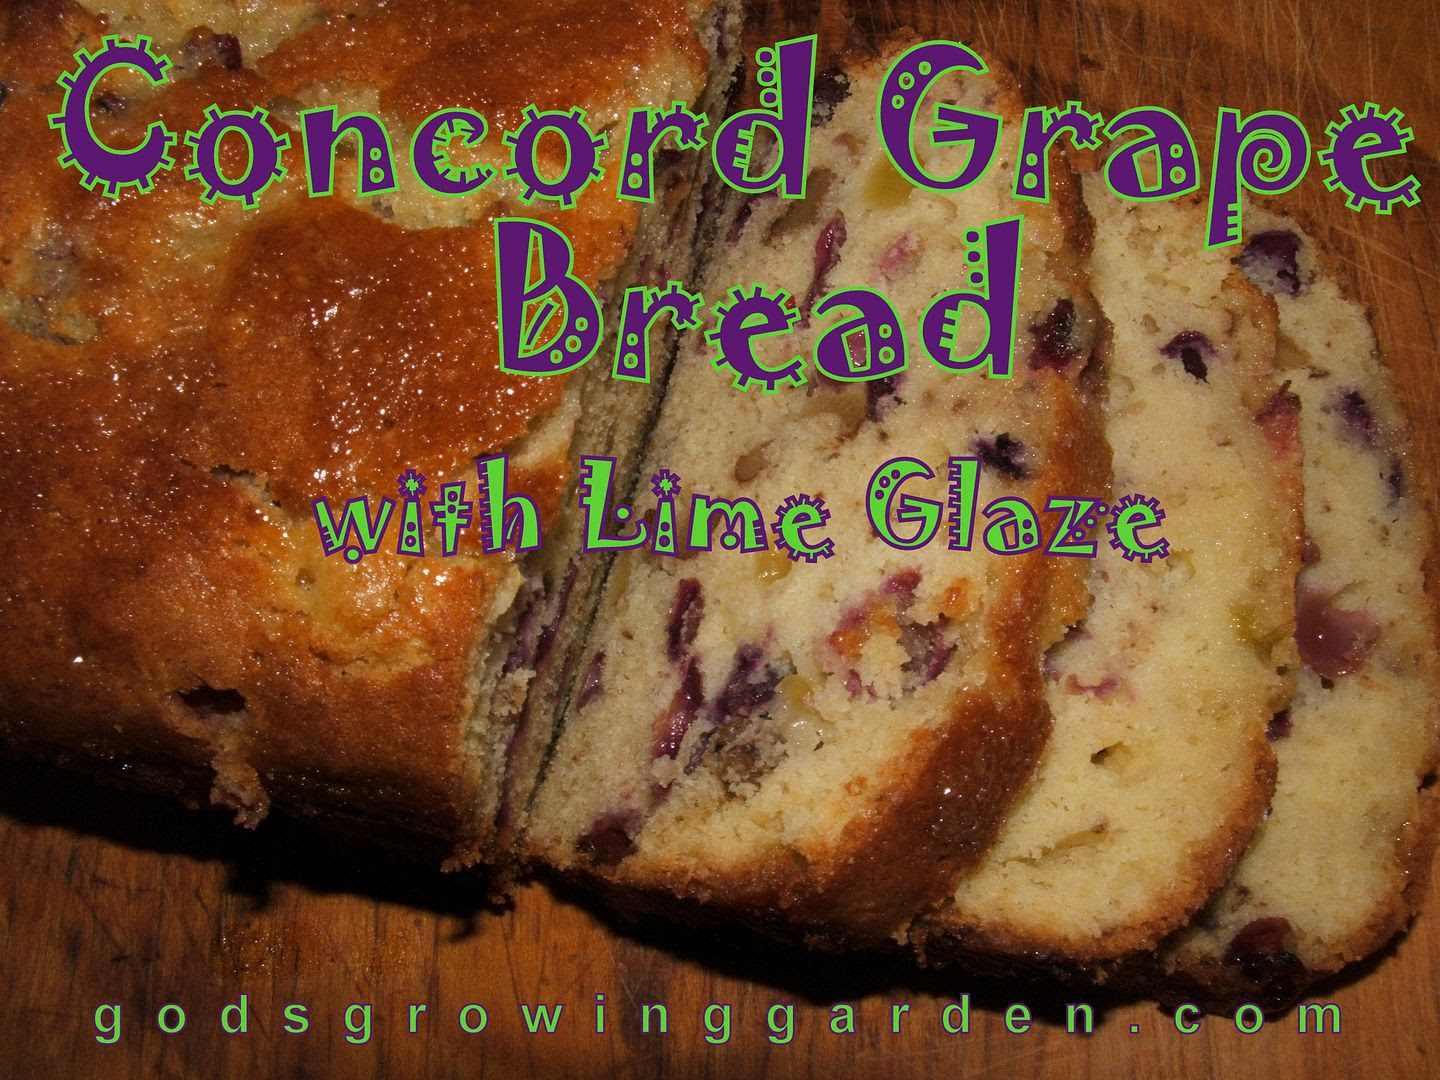 Concord Grape Bread by Angie Ouellette-Tower for godsgrowinggarden.com photo 011_zpsfe324a69.jpg